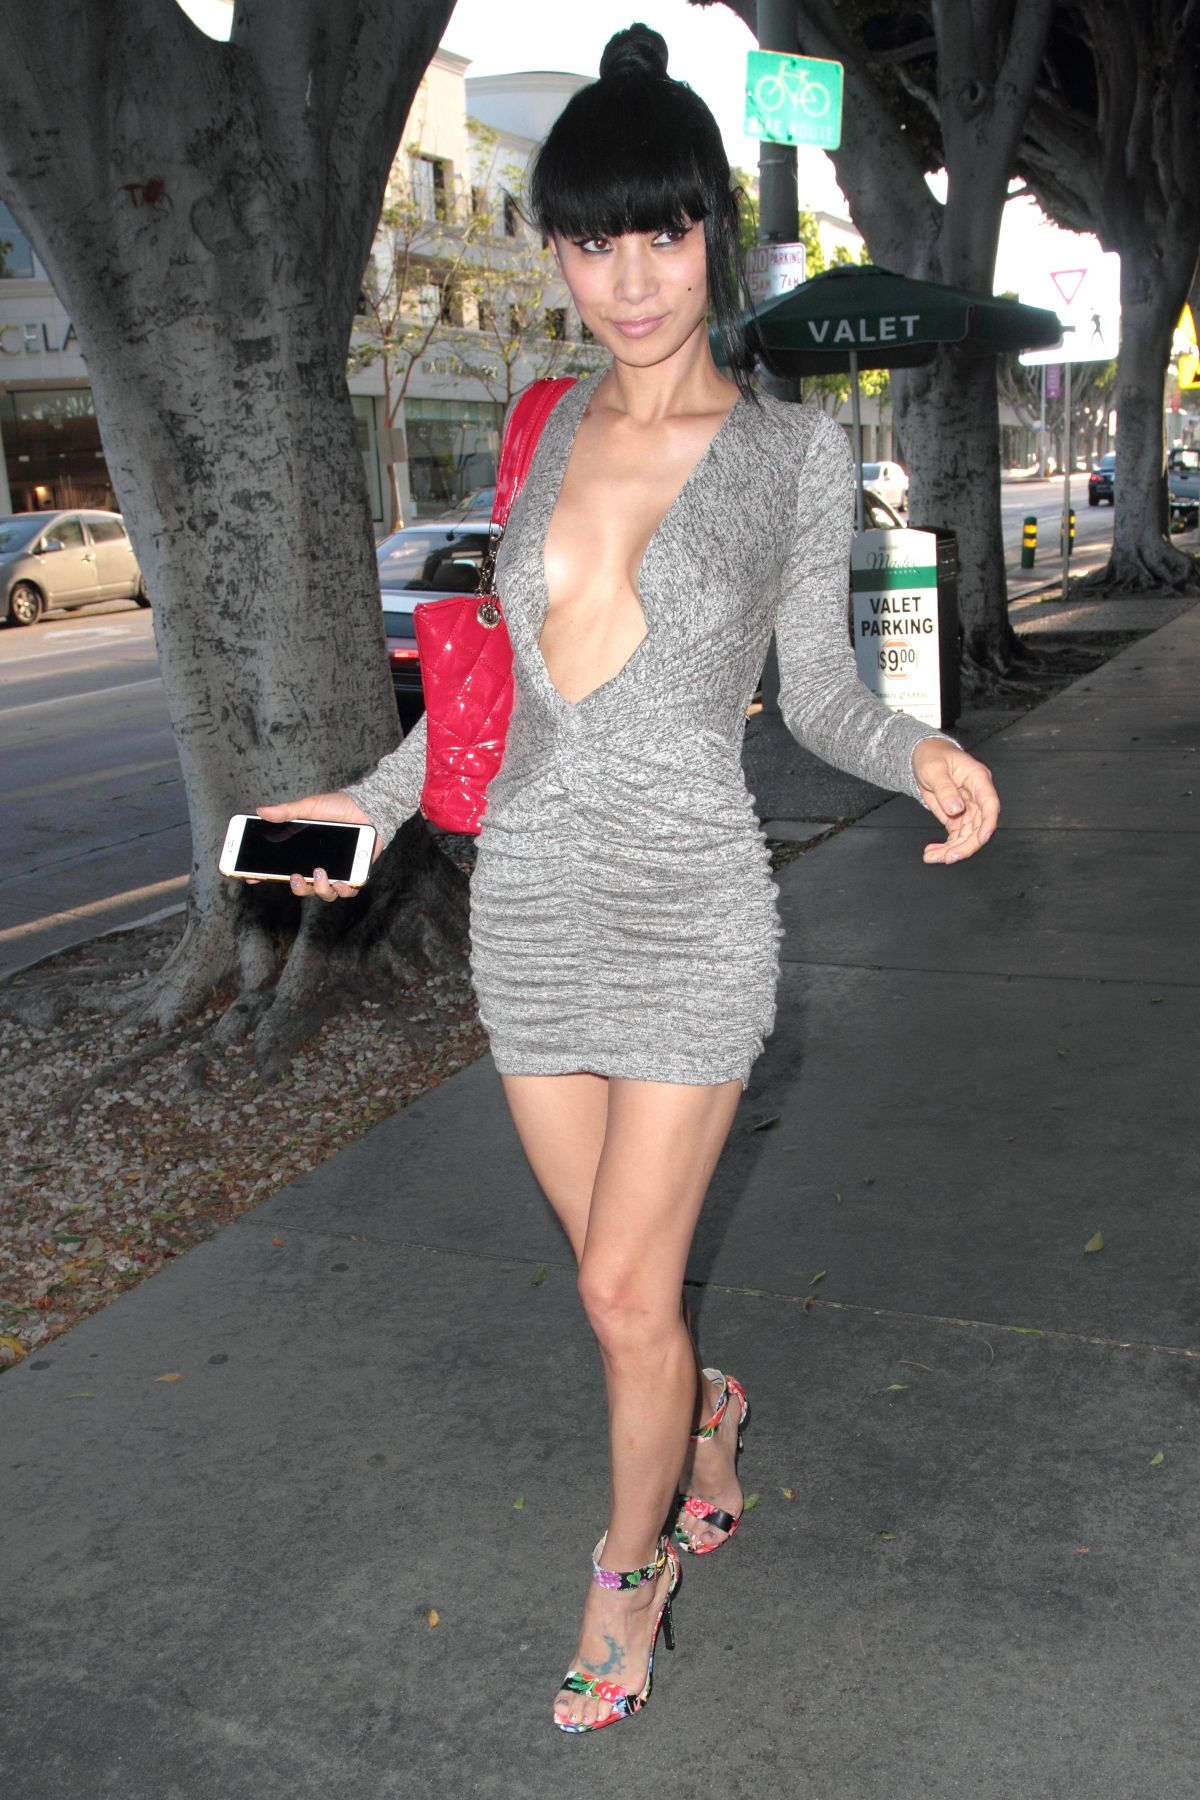 Pictures Bai Ling nude photos 2019